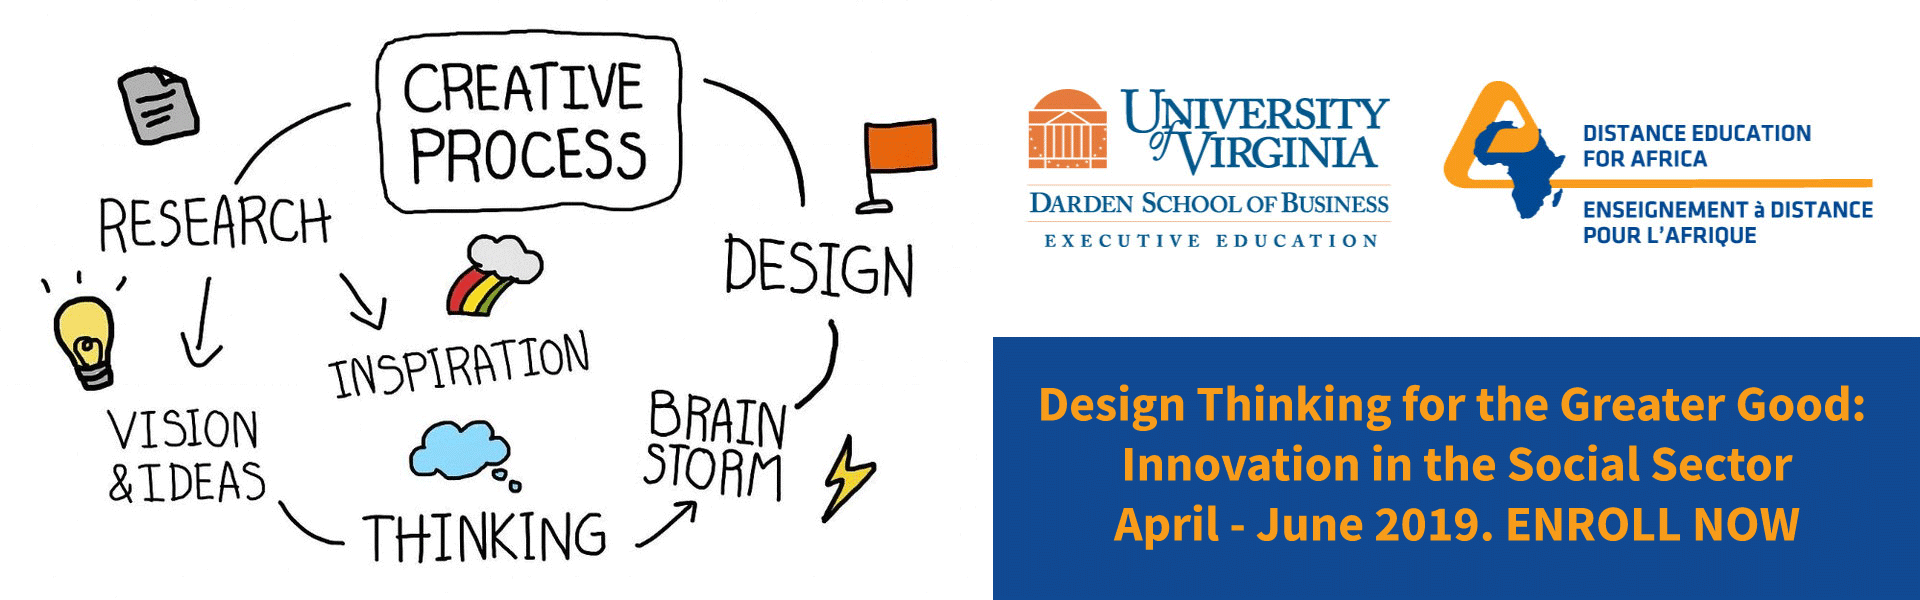 Design-Thinking-for-the-Greater-Good-banner